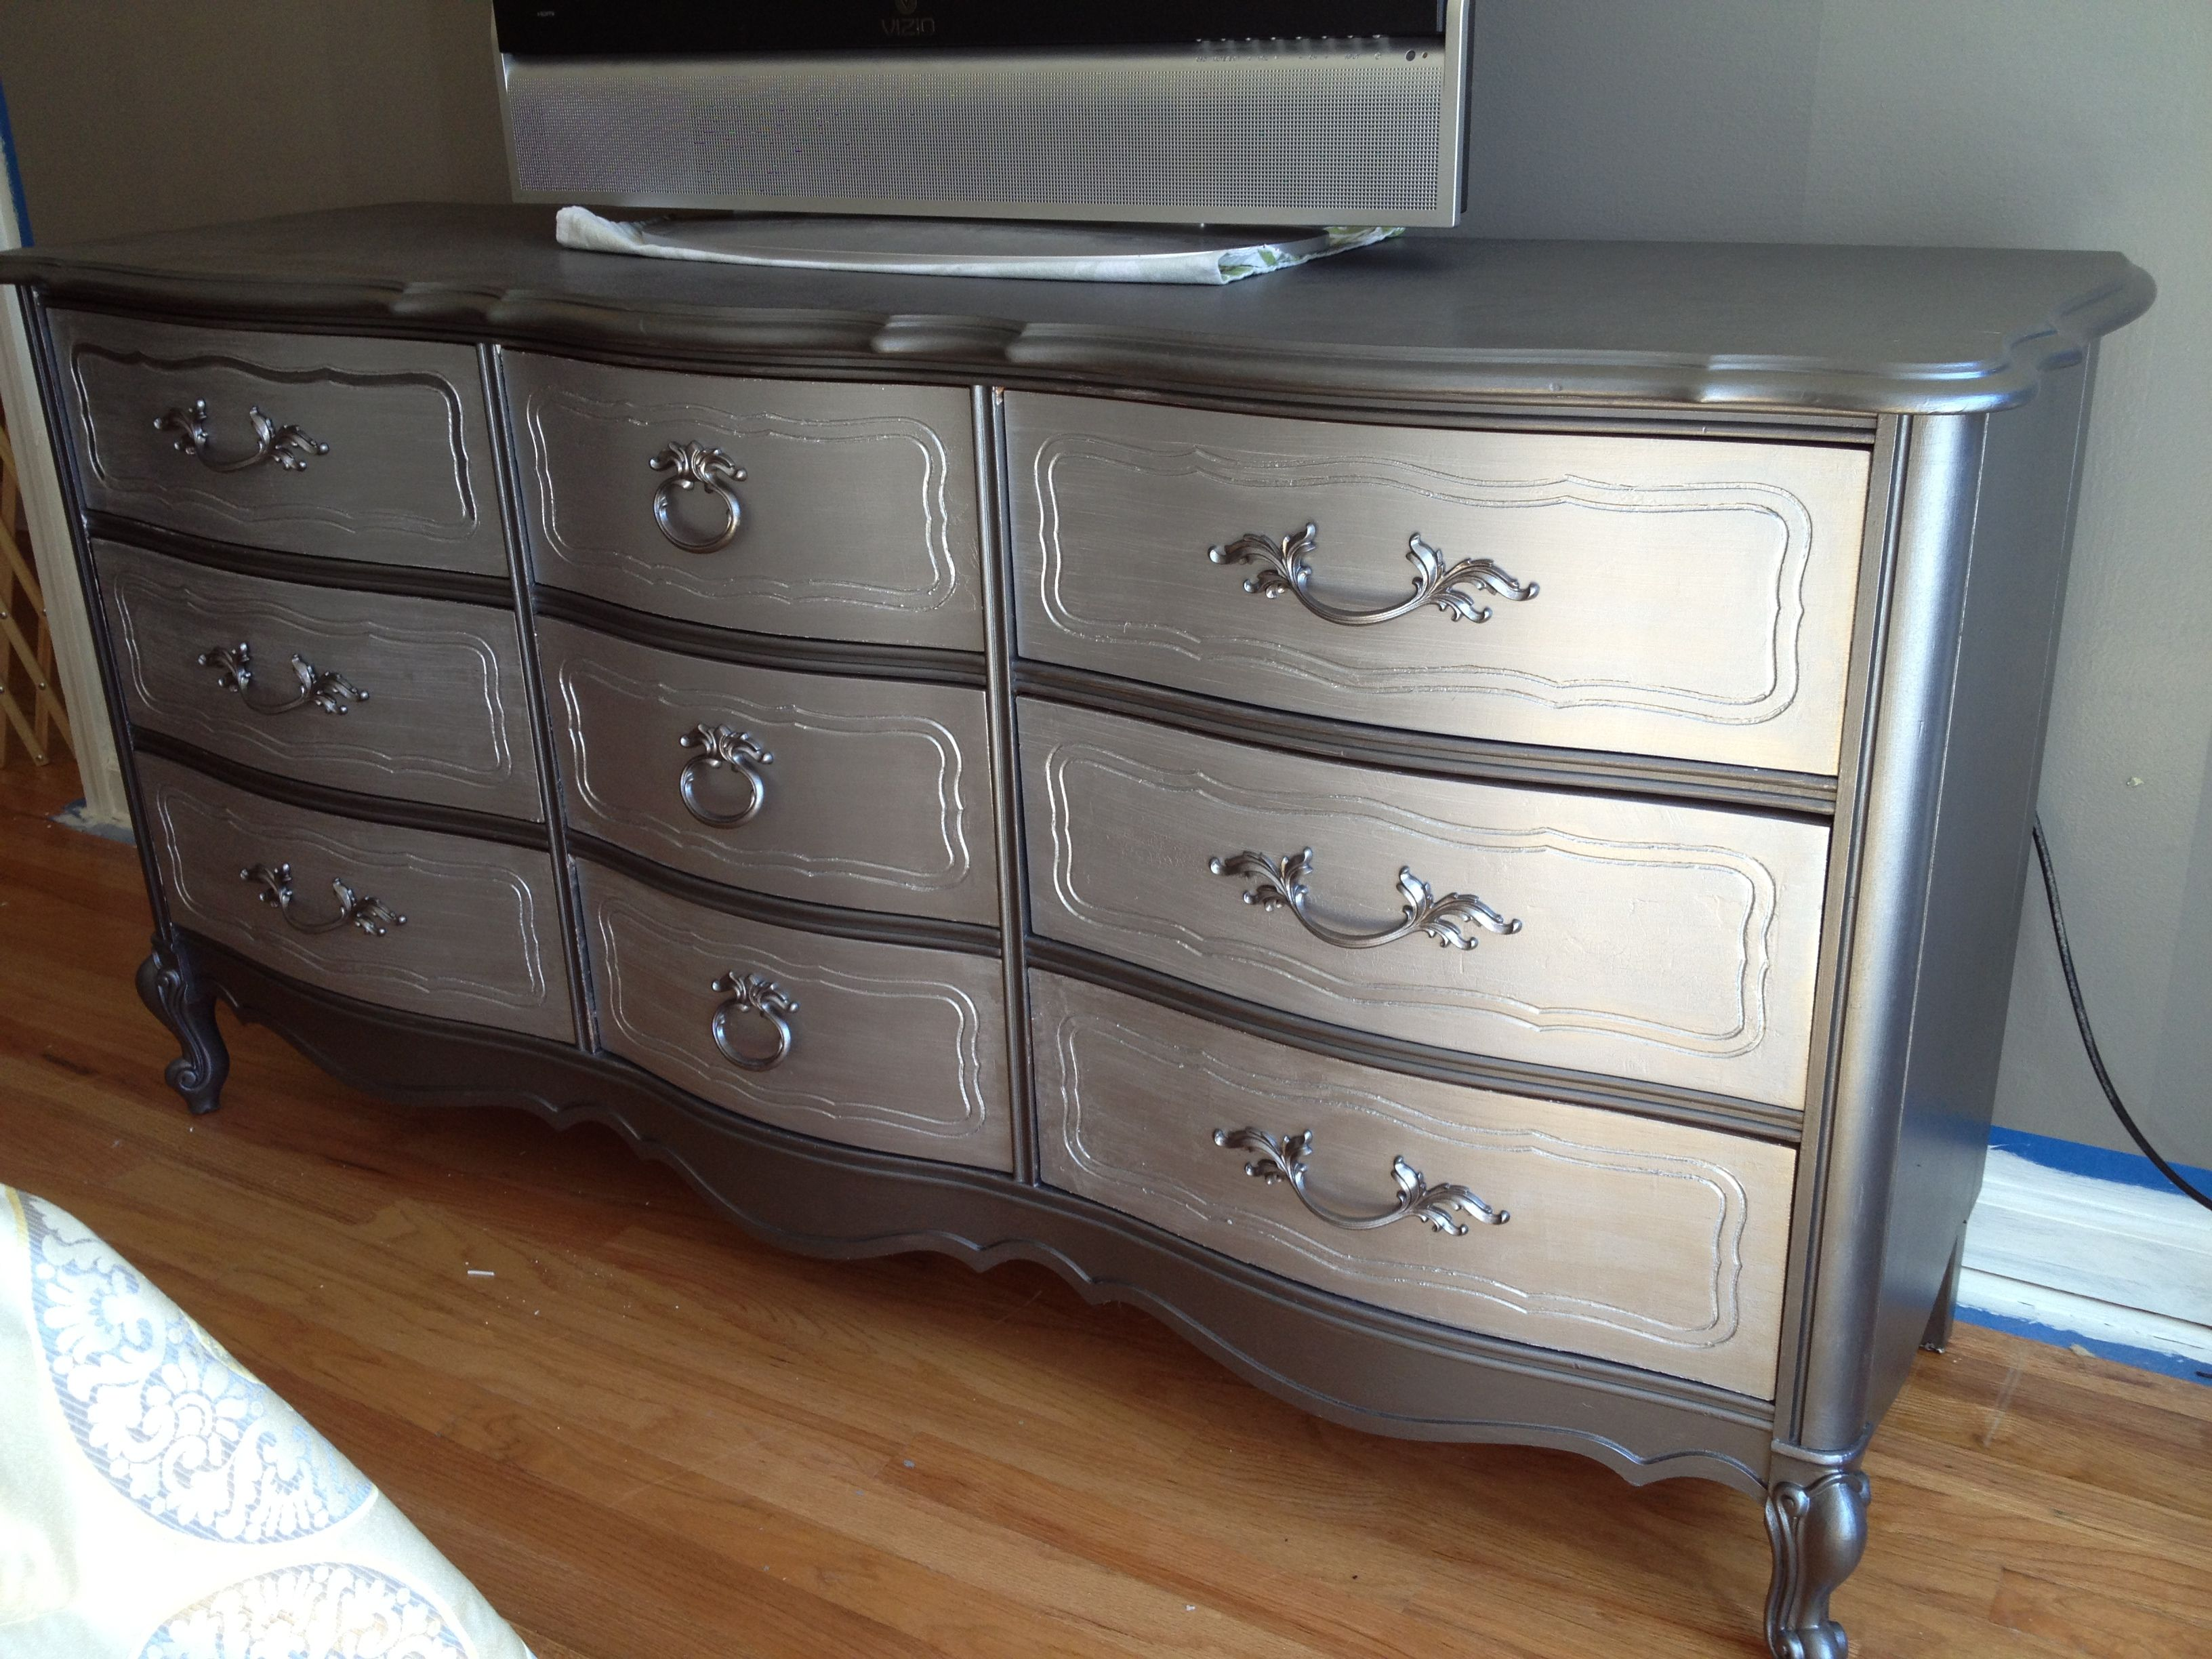 Old Wood Dresser Gets New Life With Martha Stewart Precious Metal Paints To Achieve This Look